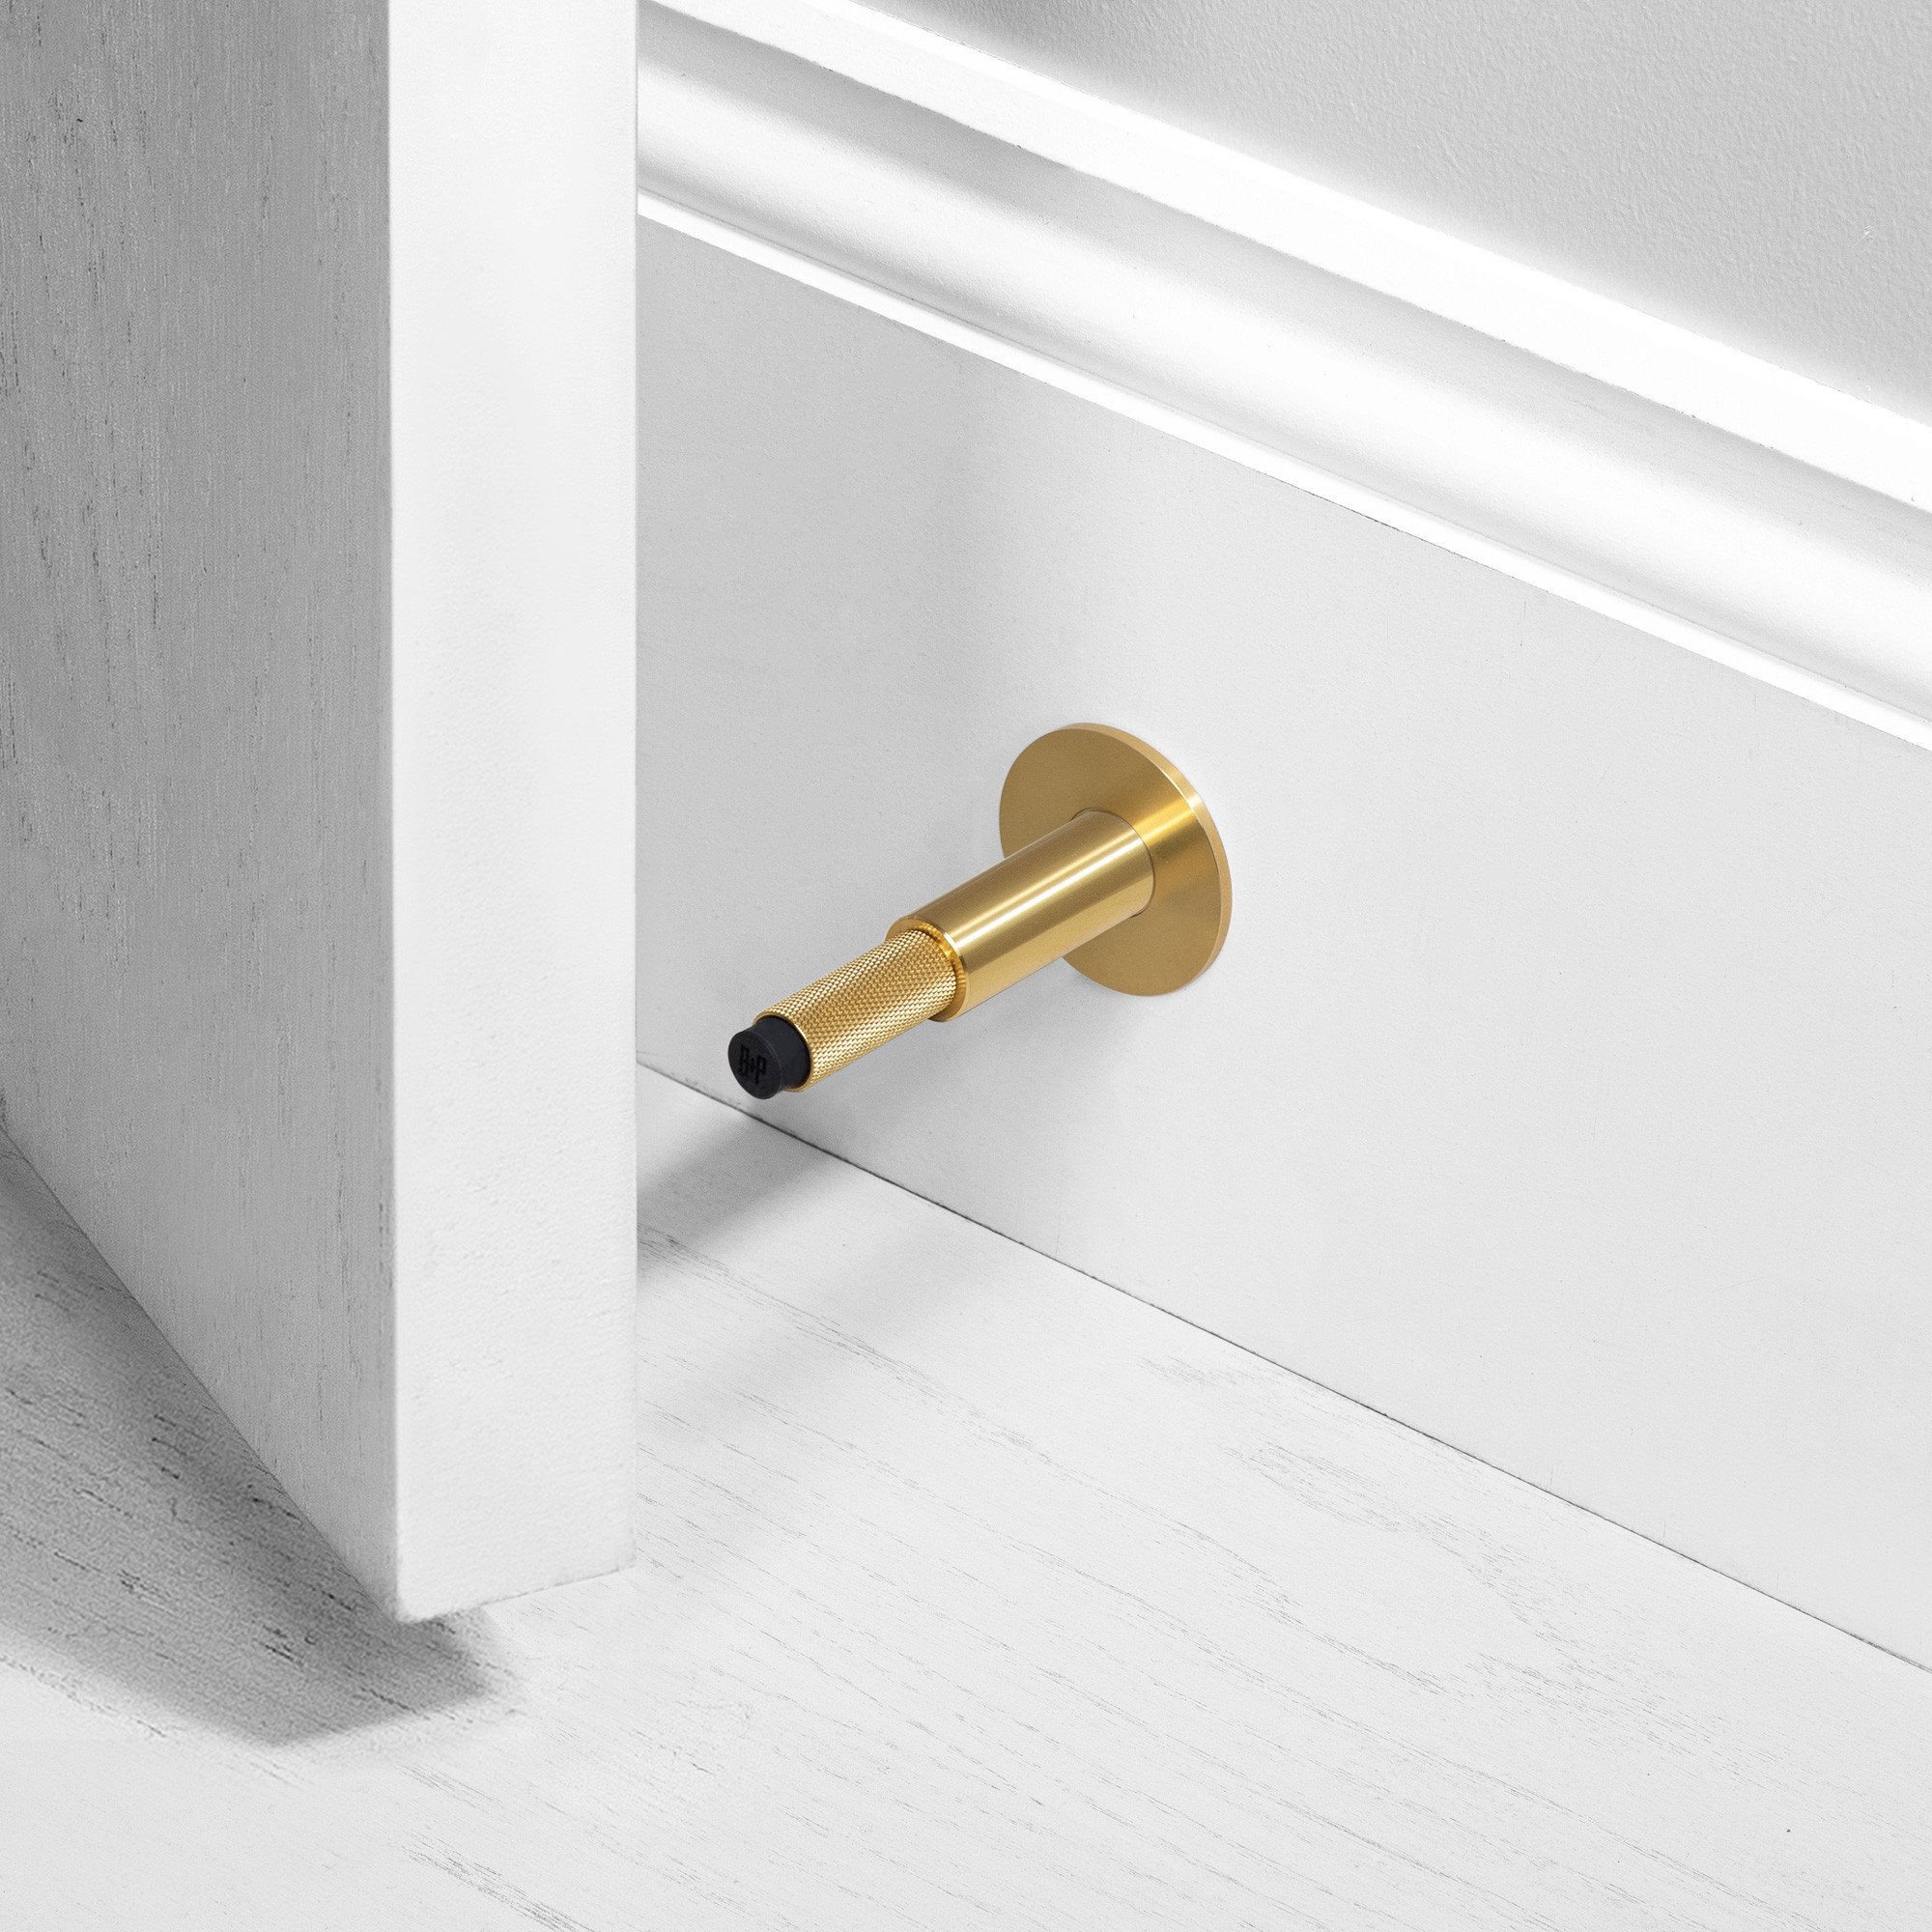 DOOR STOP / WALL / BRASS